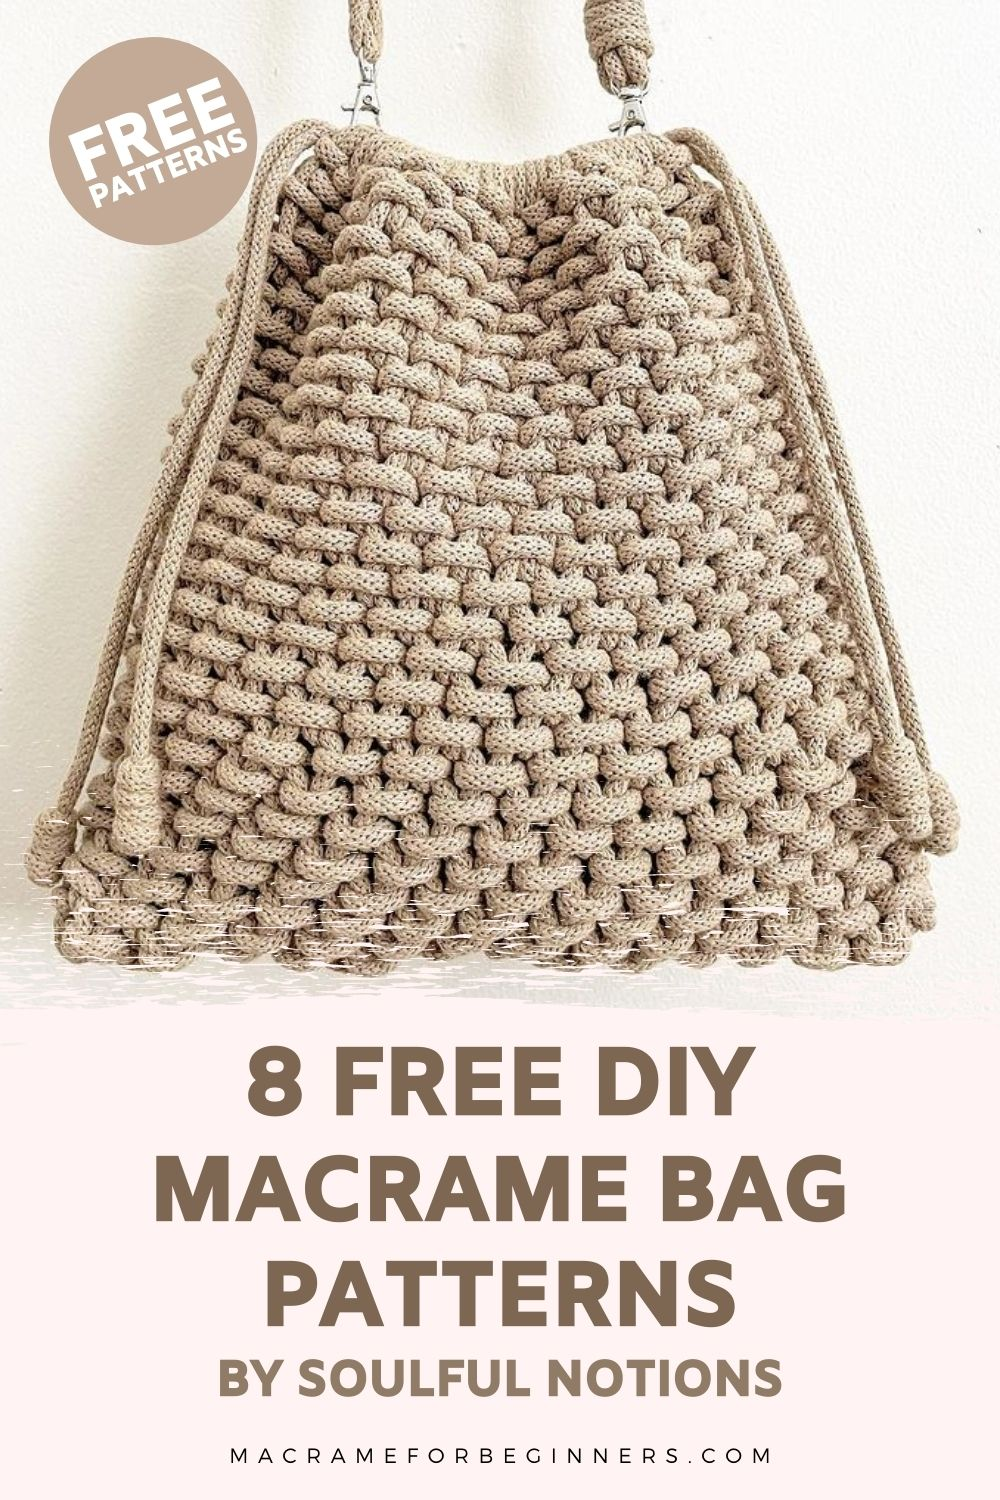 8 Gorgeous DIY Macrame Bag Patterns by Soulful Notions - Macrame for Beginners